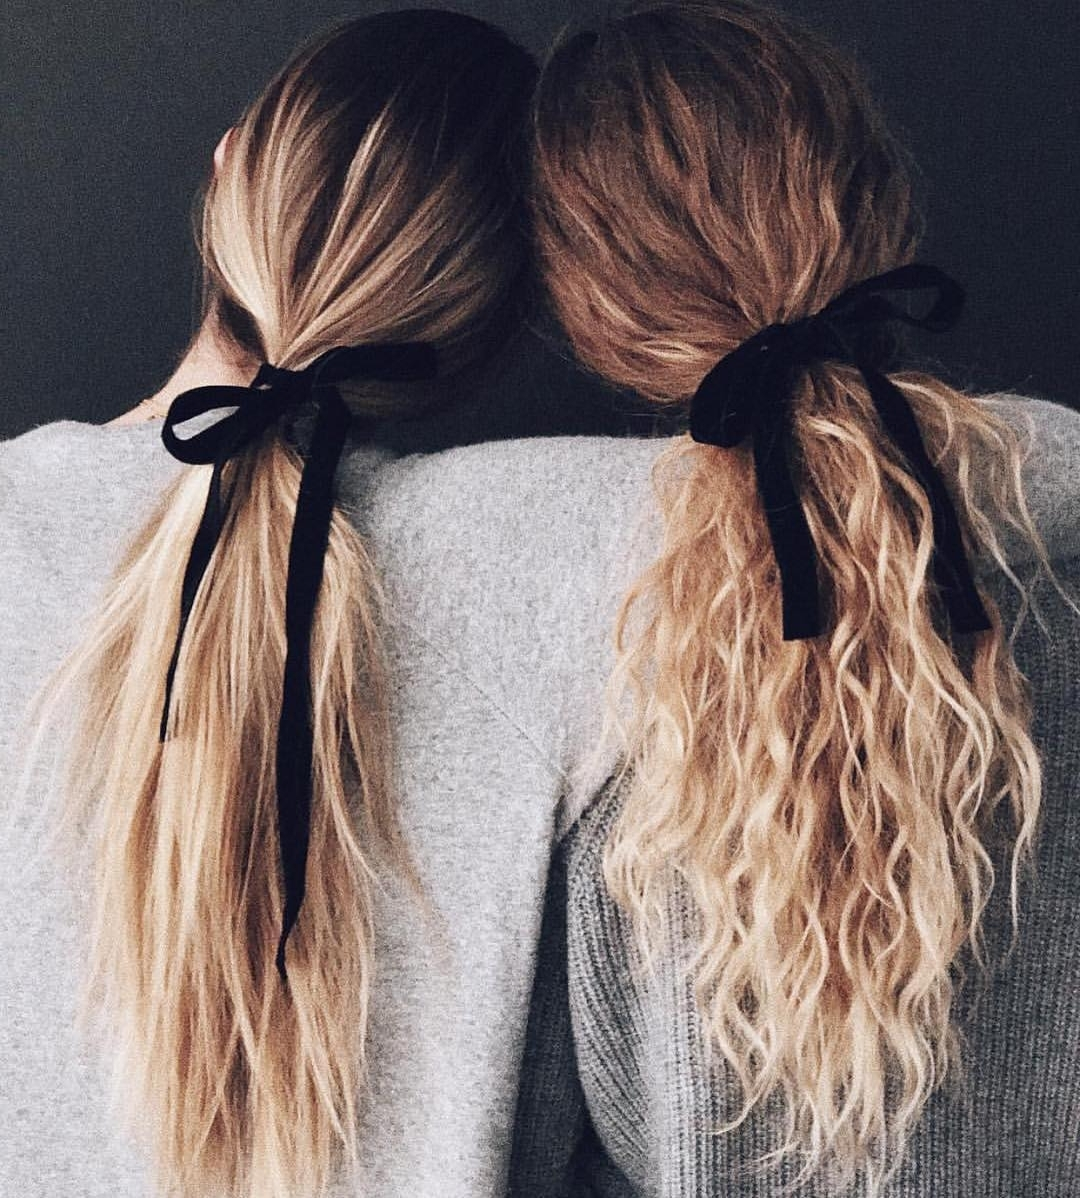 10 Trendiest Ponytail Hairstyles For Long Hair 2018 – Easy Ponytails Intended For Newest Low Twisted Pony Hairstyles For Ombre Hair (View 3 of 20)